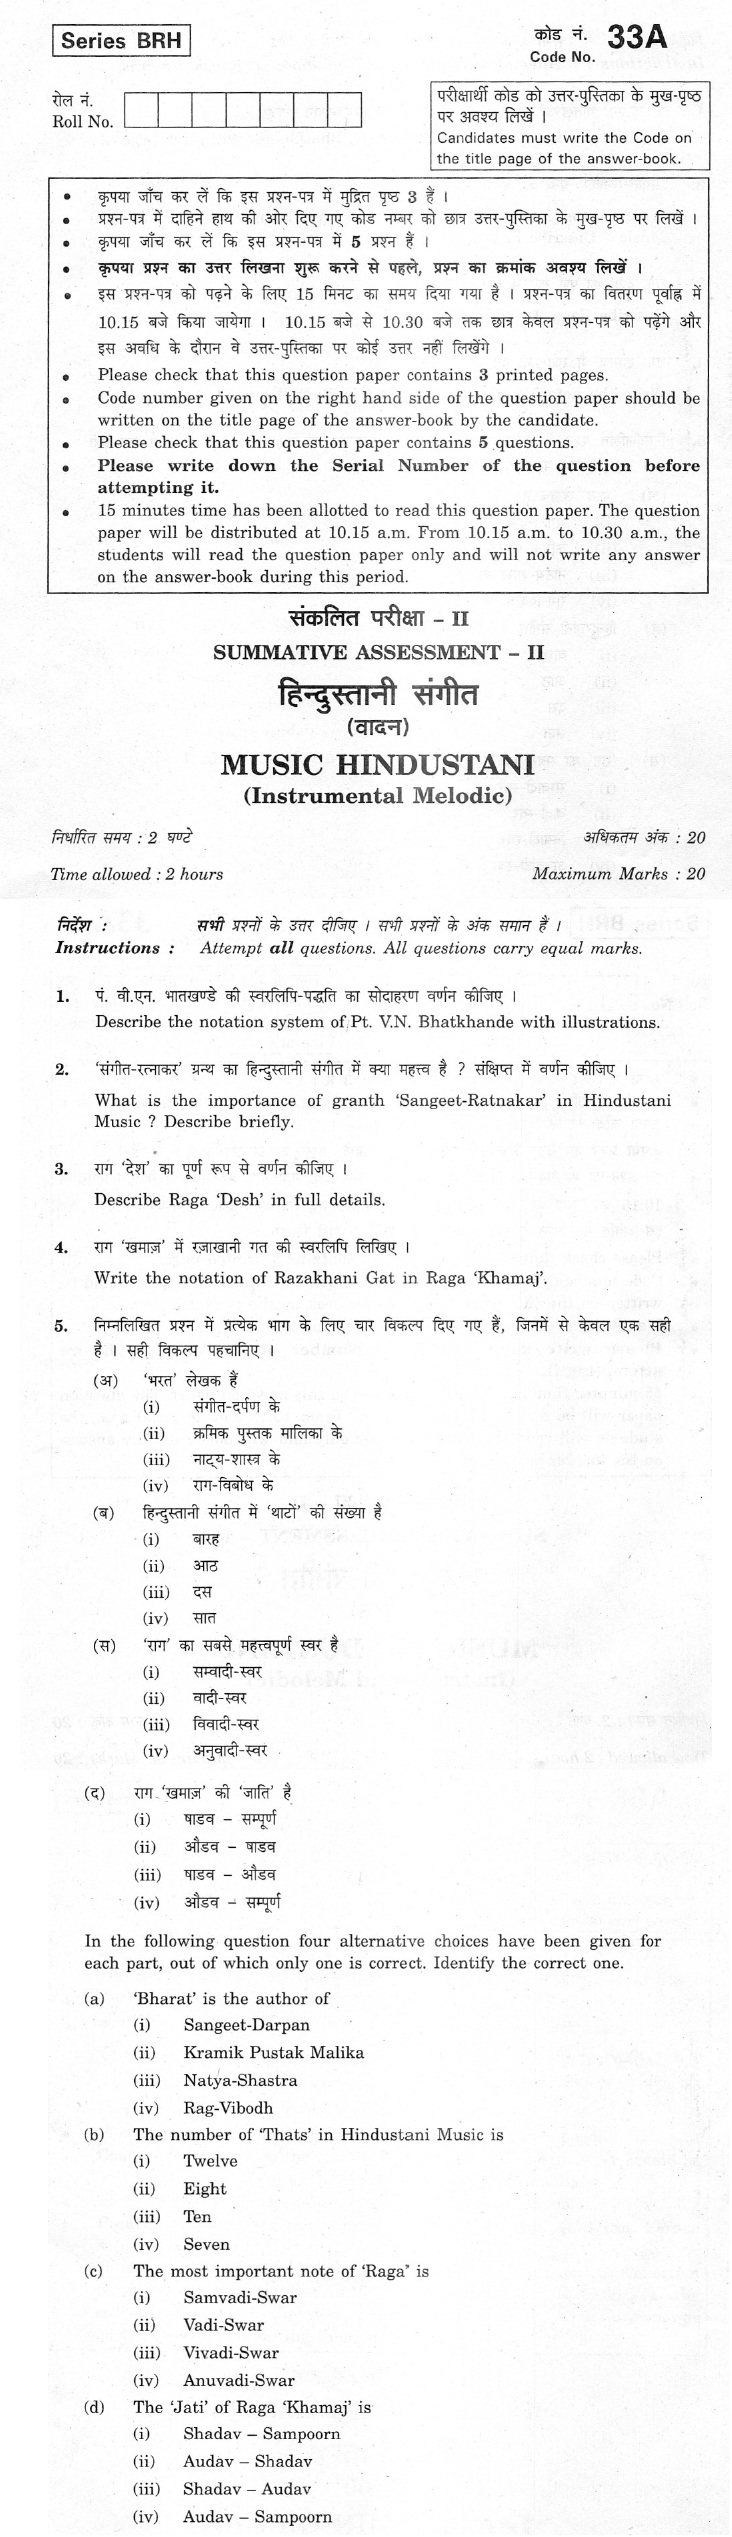 CBSE Class X Previous Year Question Papers 2012 Music Hindustani(Instrumental Melodic)